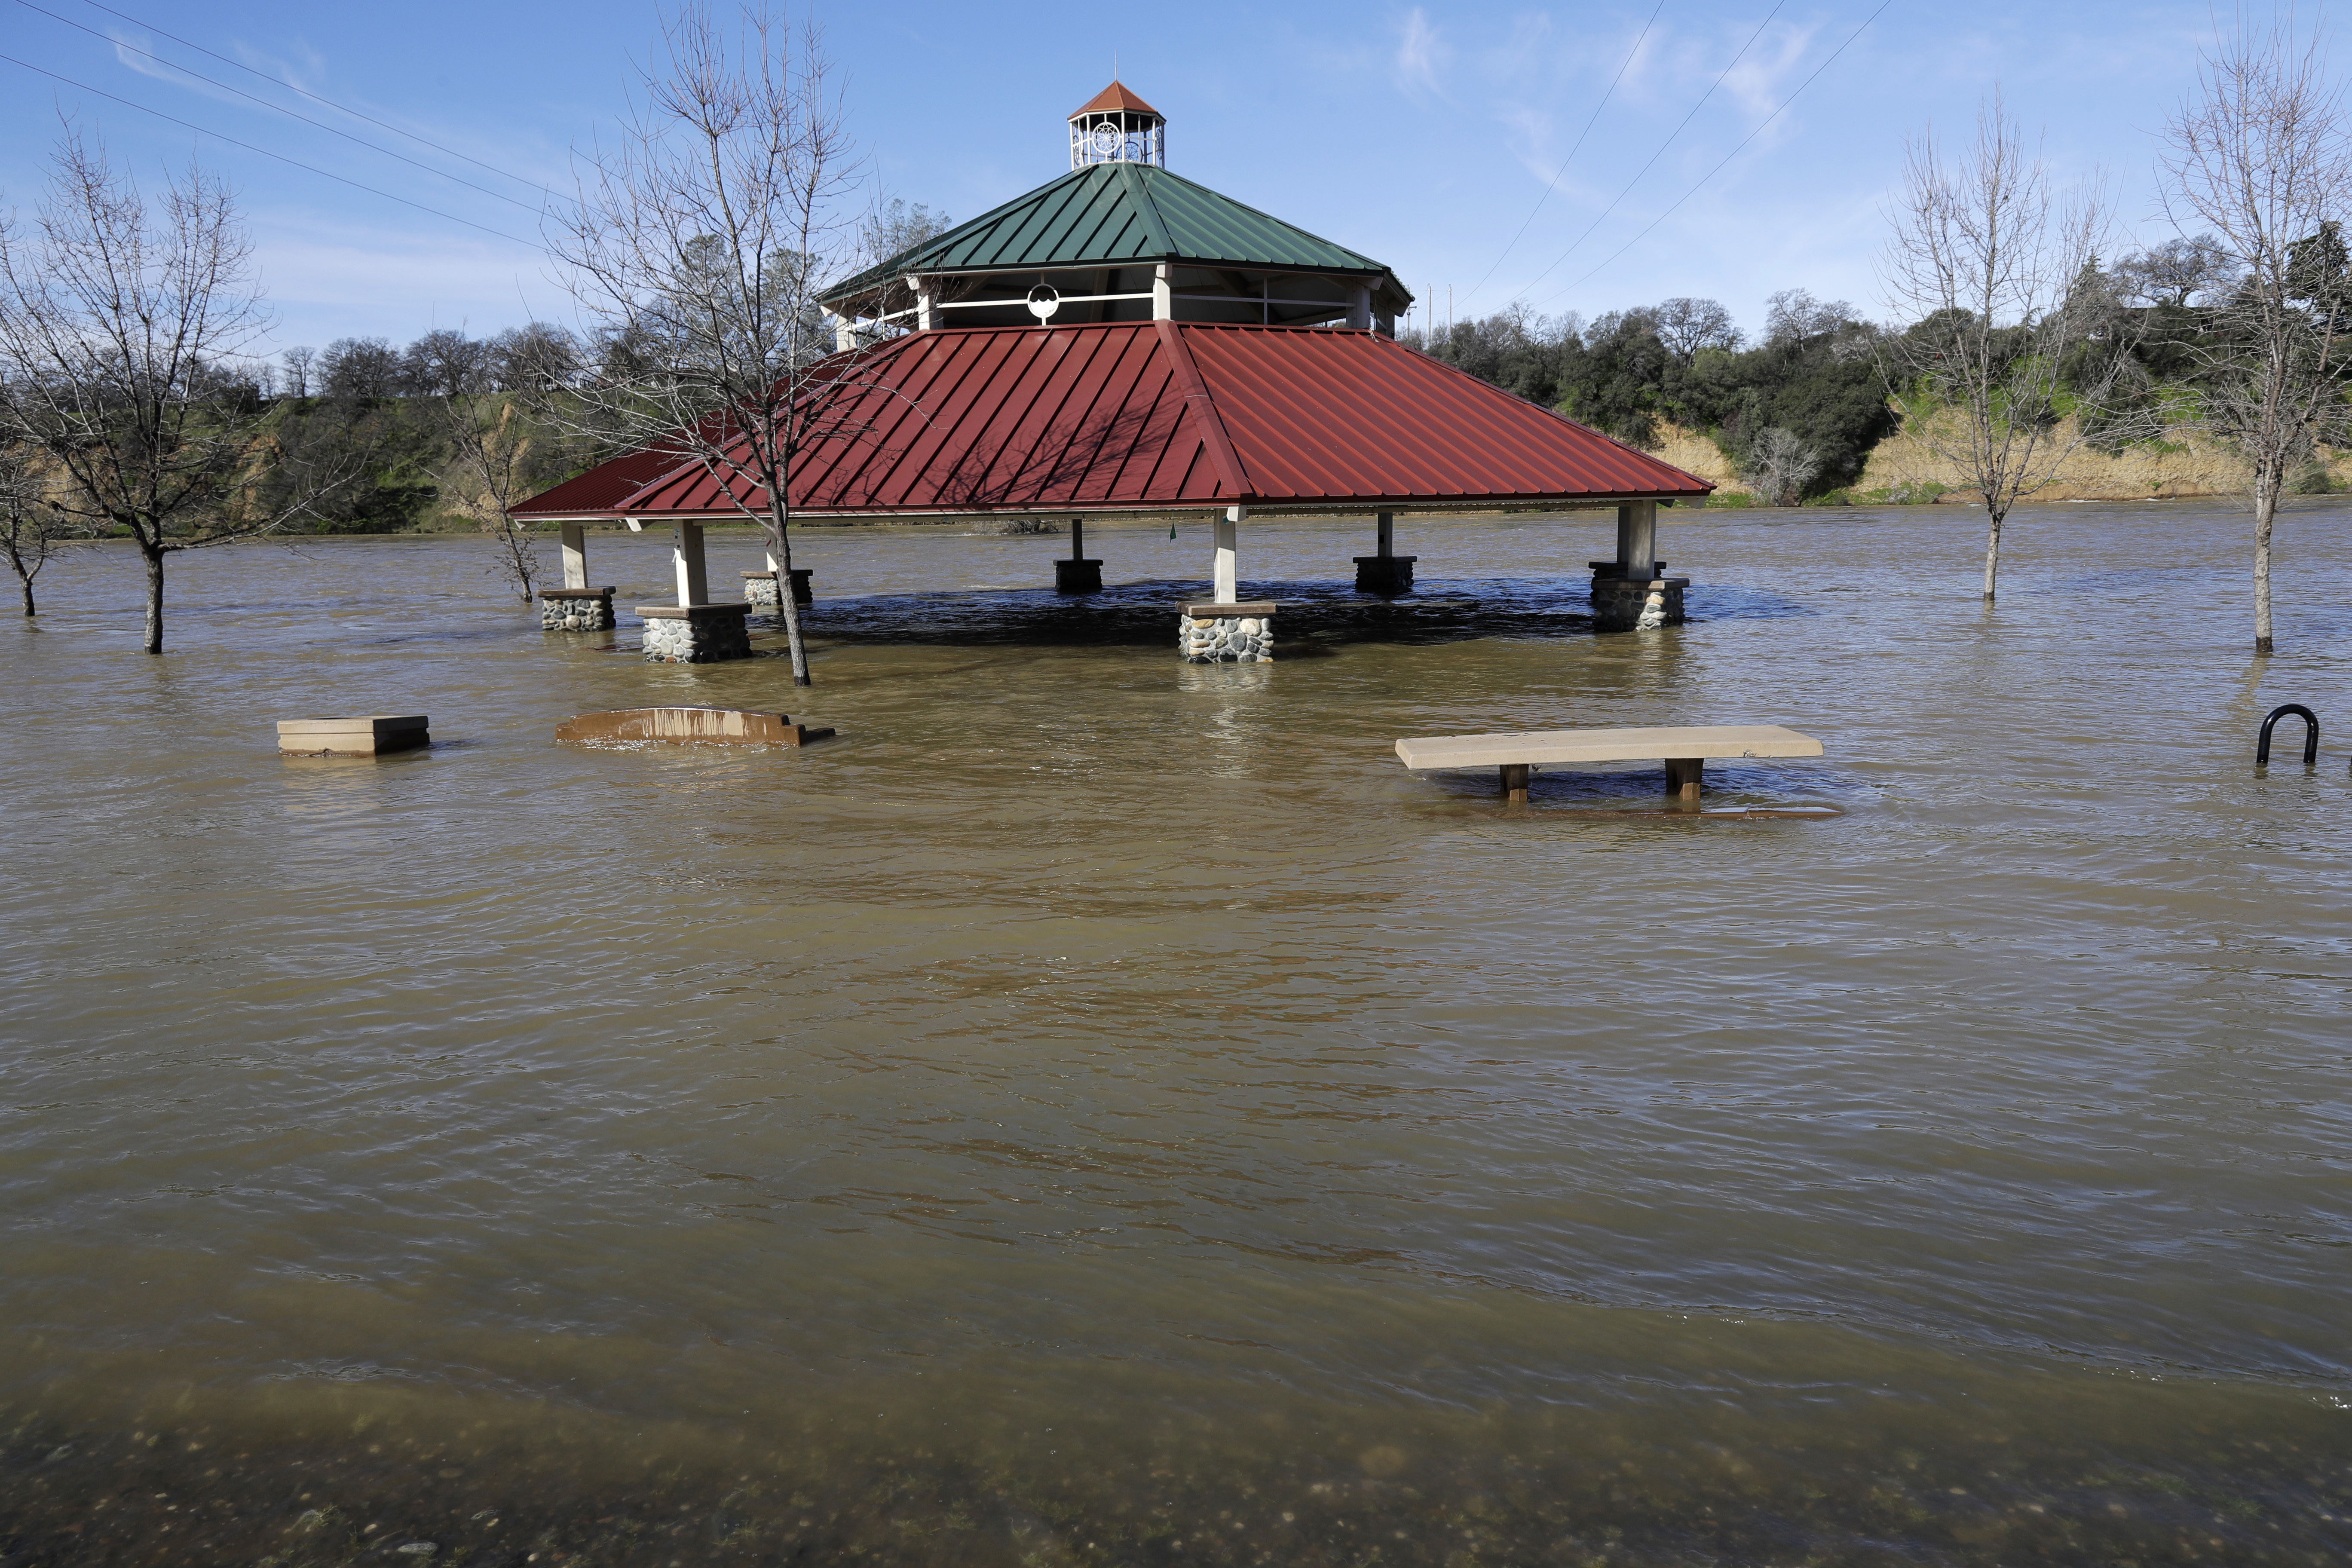 A gazebo is submerged from the overflowing Feather River downstream from a damaged dam at Riverbend Park in Oroville, Calif., on Feb. 14, 2017. (AP Photo/Marcio Jose Sanchez)